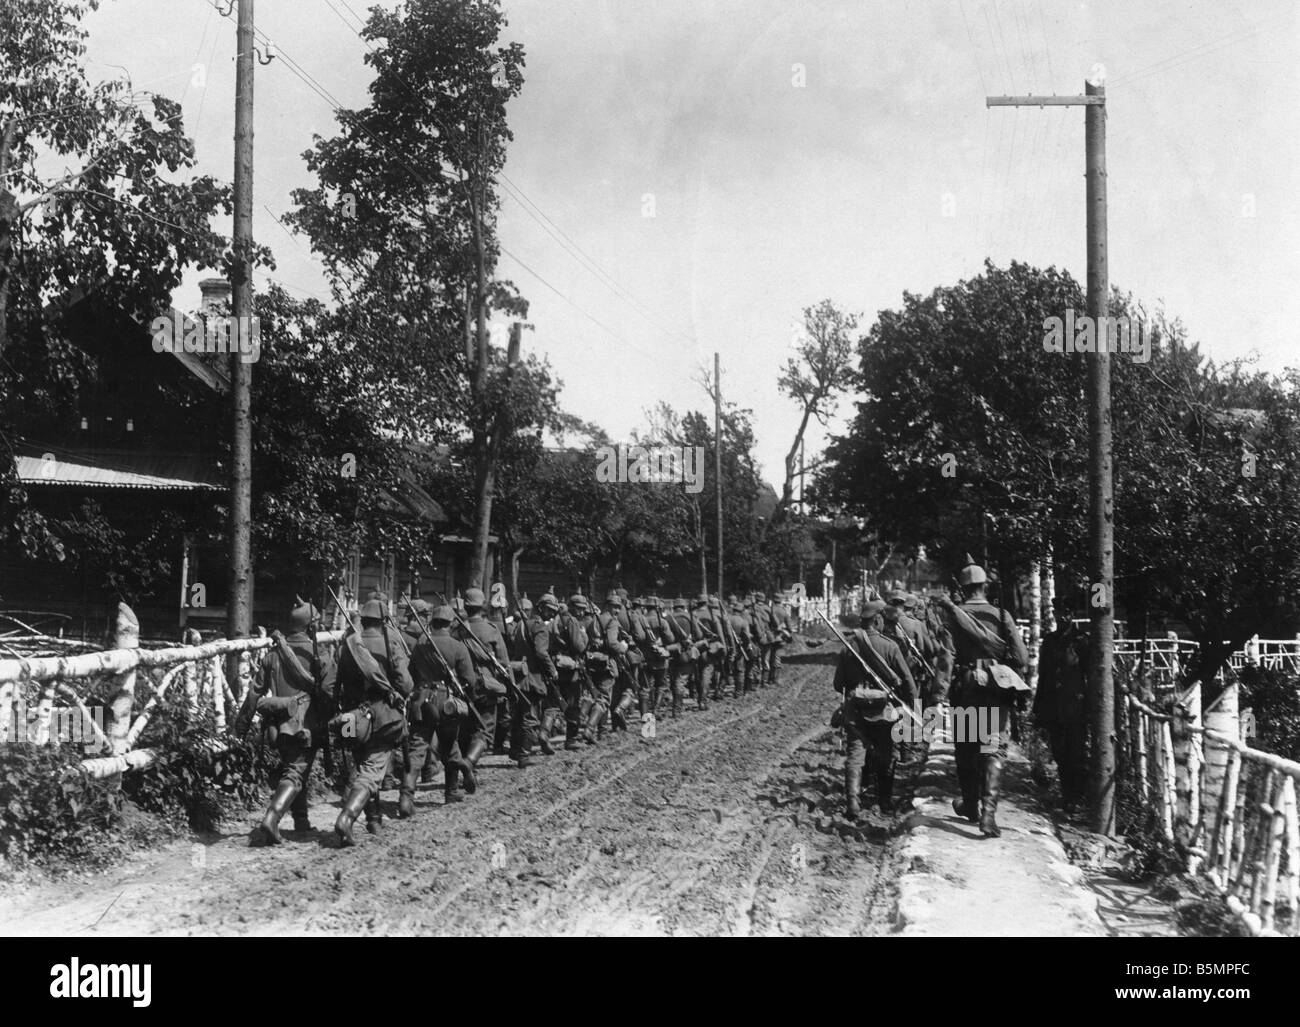 Eastern Front Infantry Marching Photo World War I Eastern Front German infantry troops marching Photo 1915 Otto - Stock Image